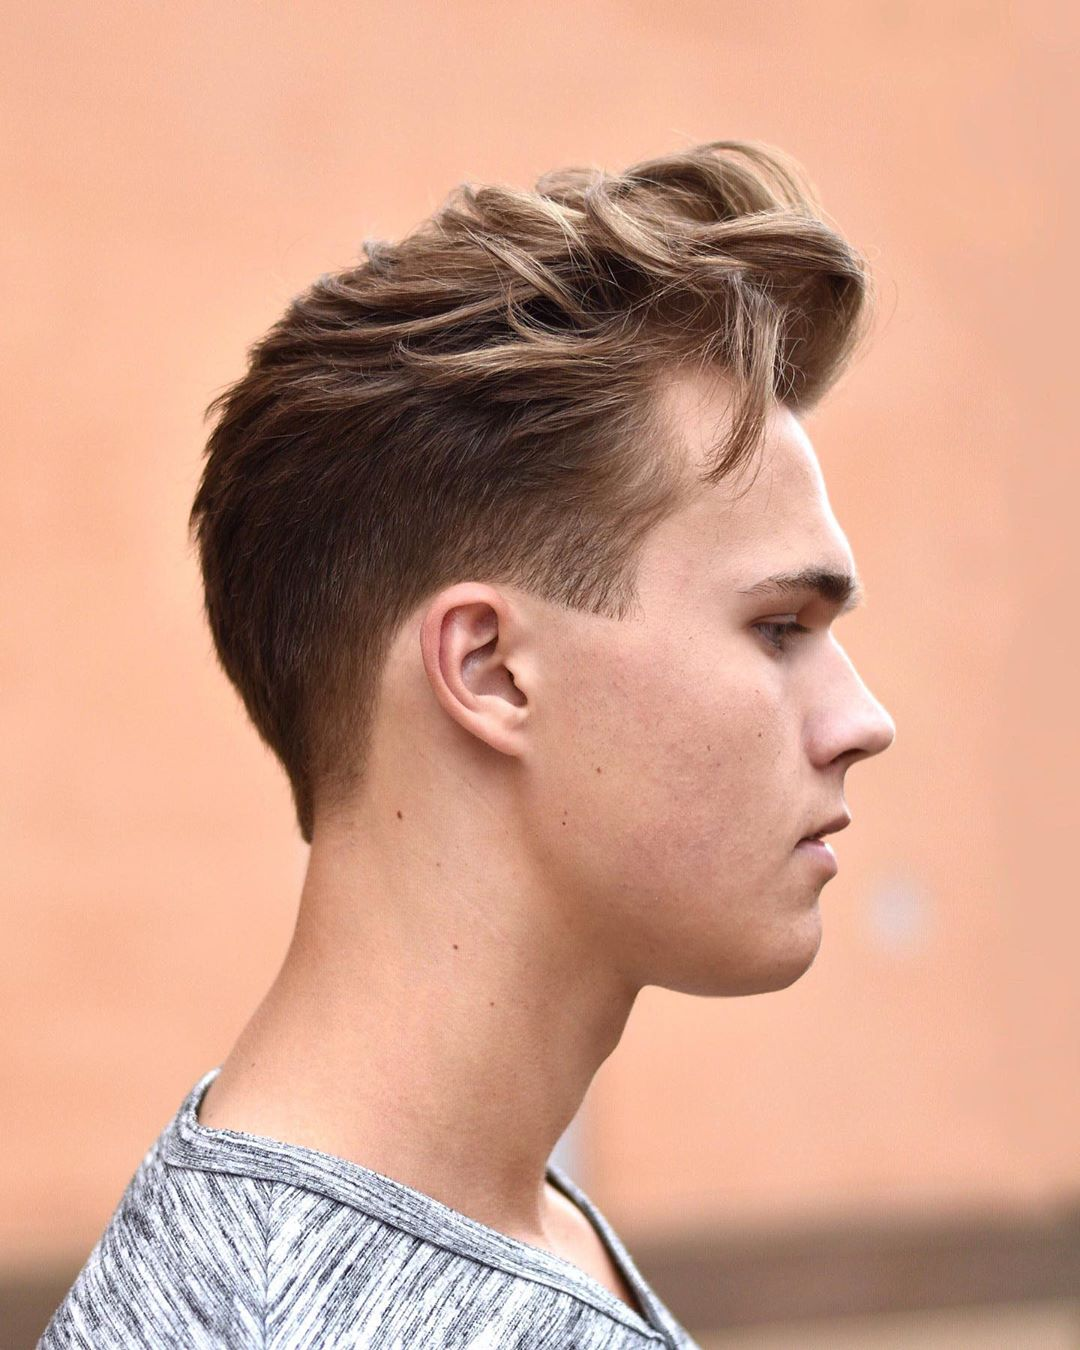 15+ Best Men's Haircuts For 15 Pick A Style To Show Your Barber